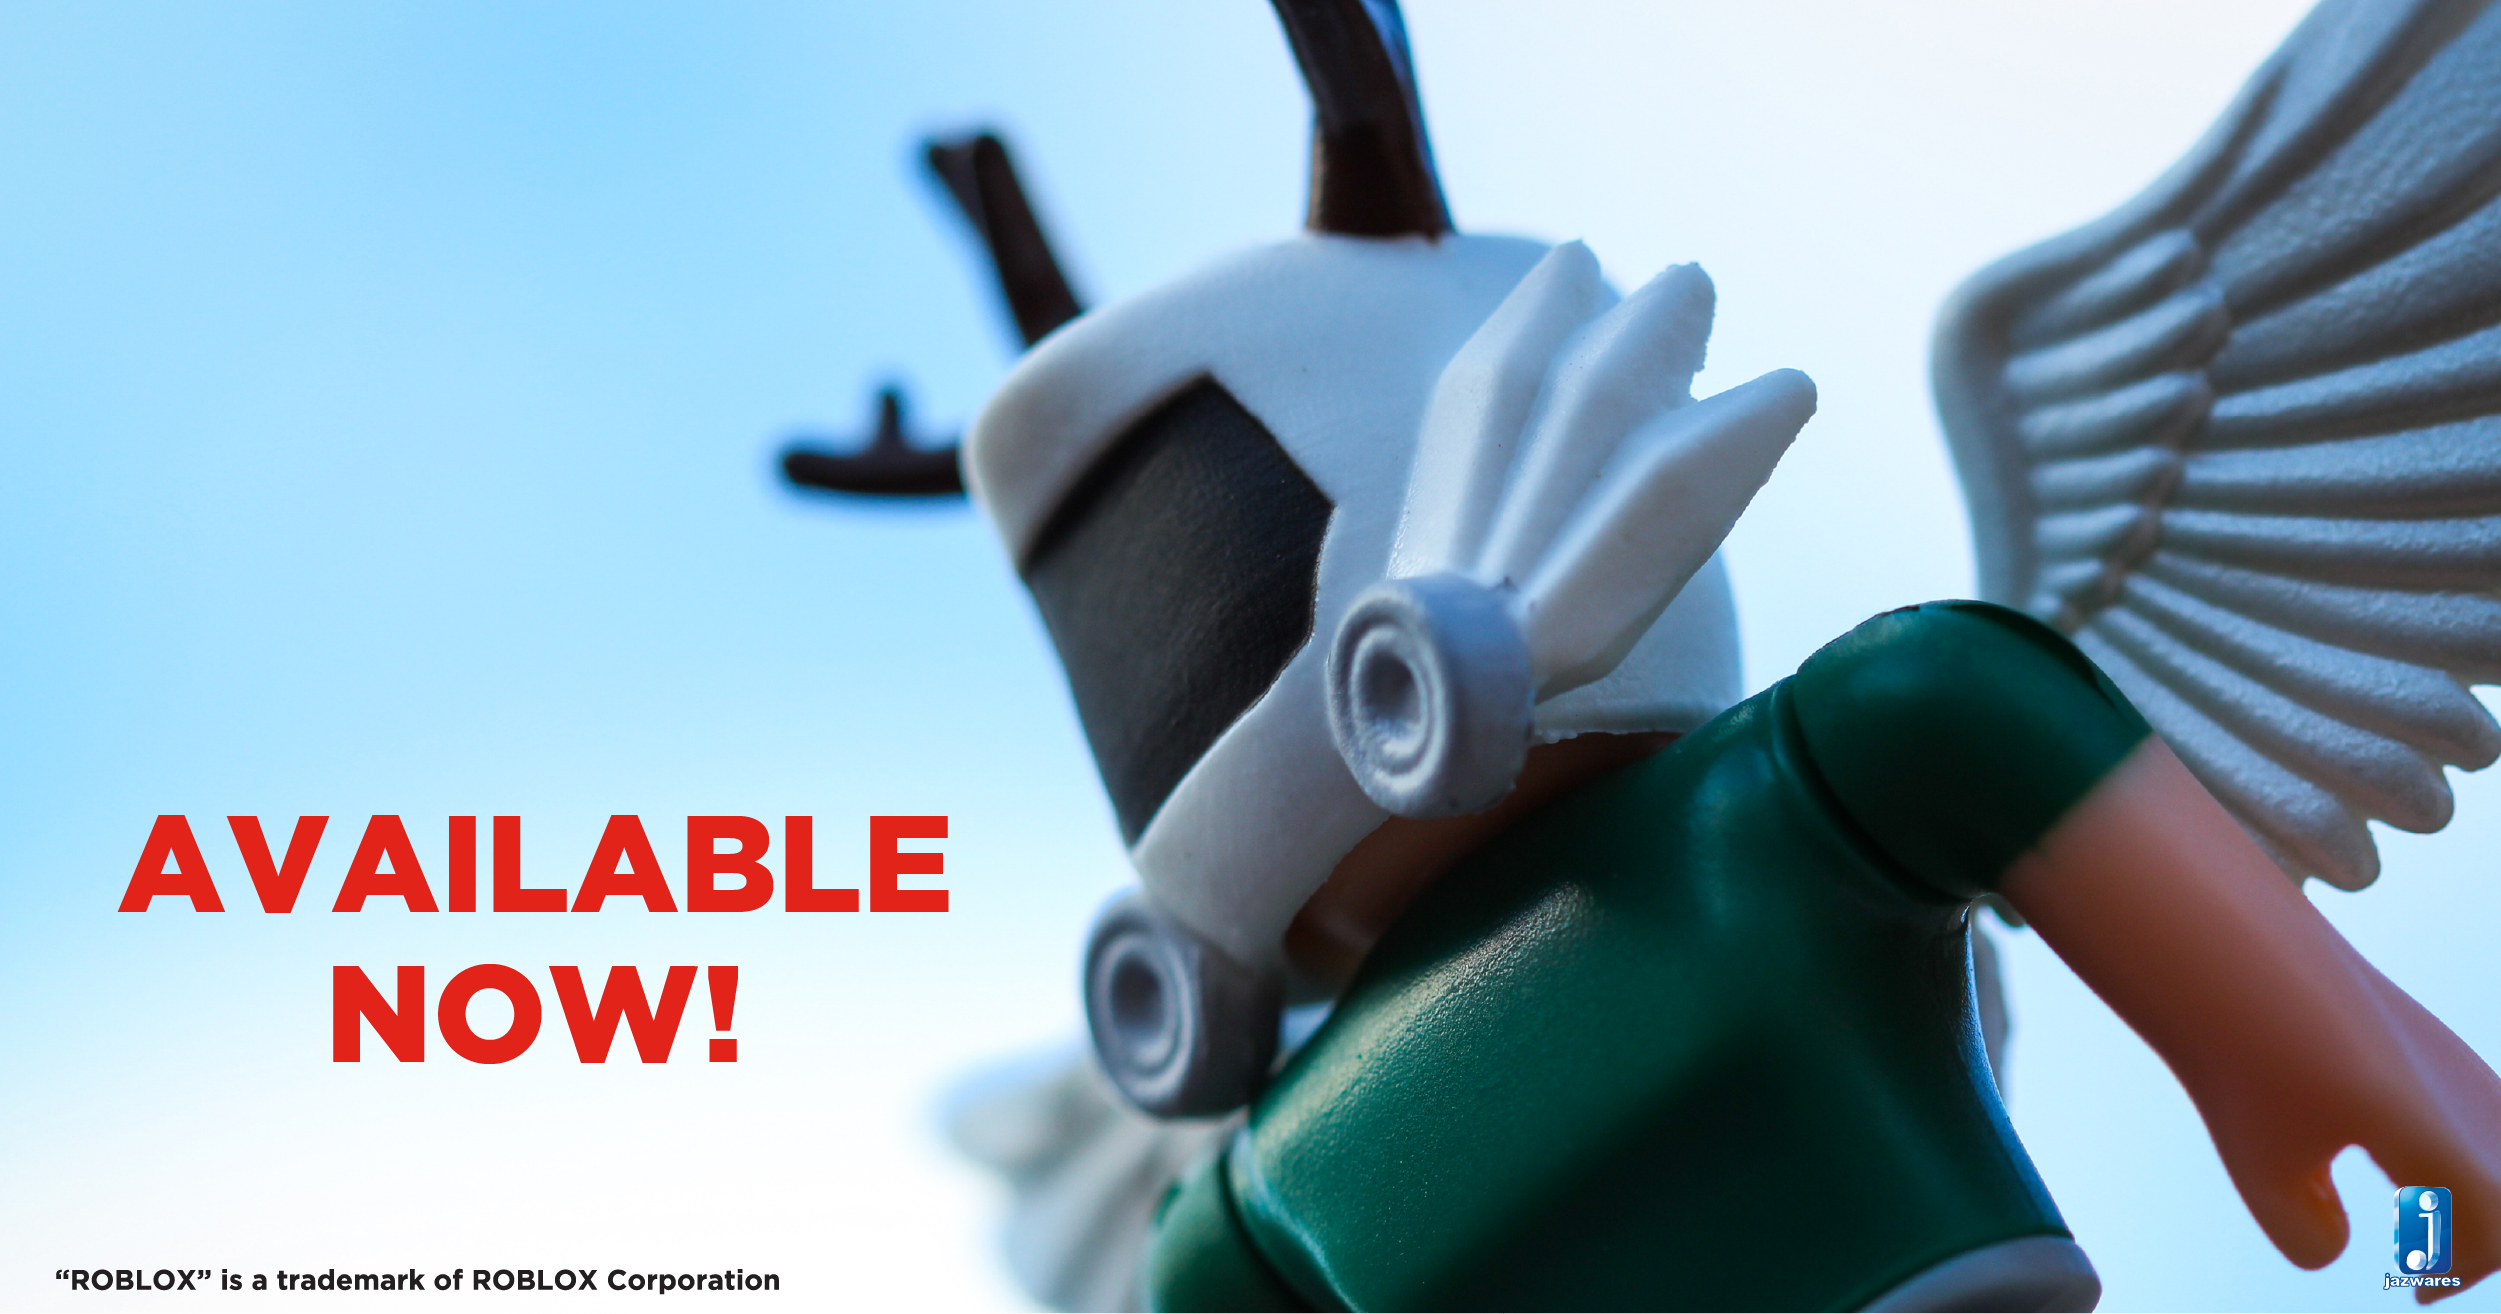 Stickmasterluke Is 1 Of 40 Roblox Figures That You Can Discover